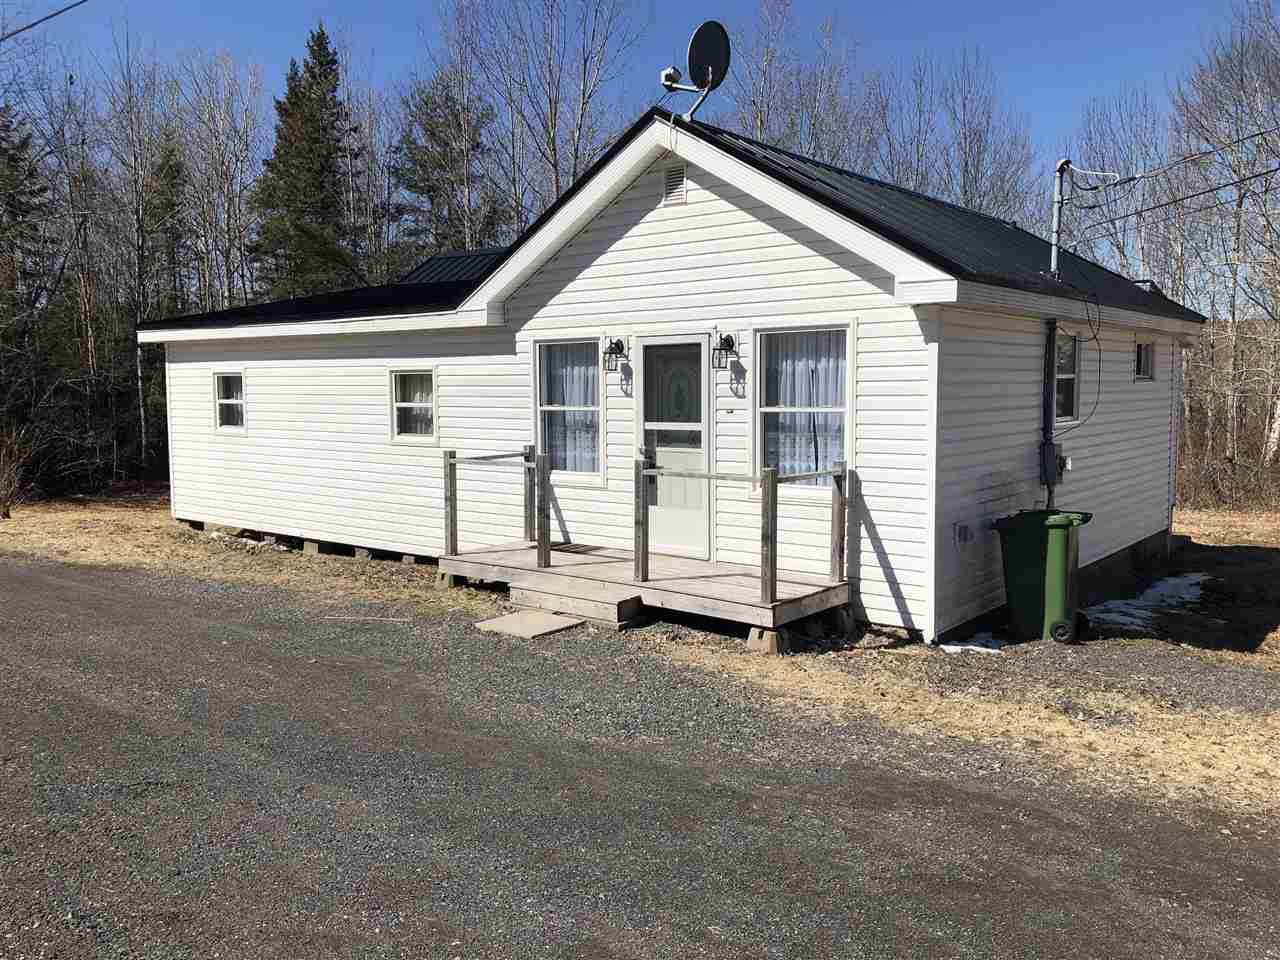 Main Photo: 3775 East River East Side Road in Churchville: 108-Rural Pictou County Residential for sale (Northern Region)  : MLS®# 201903332